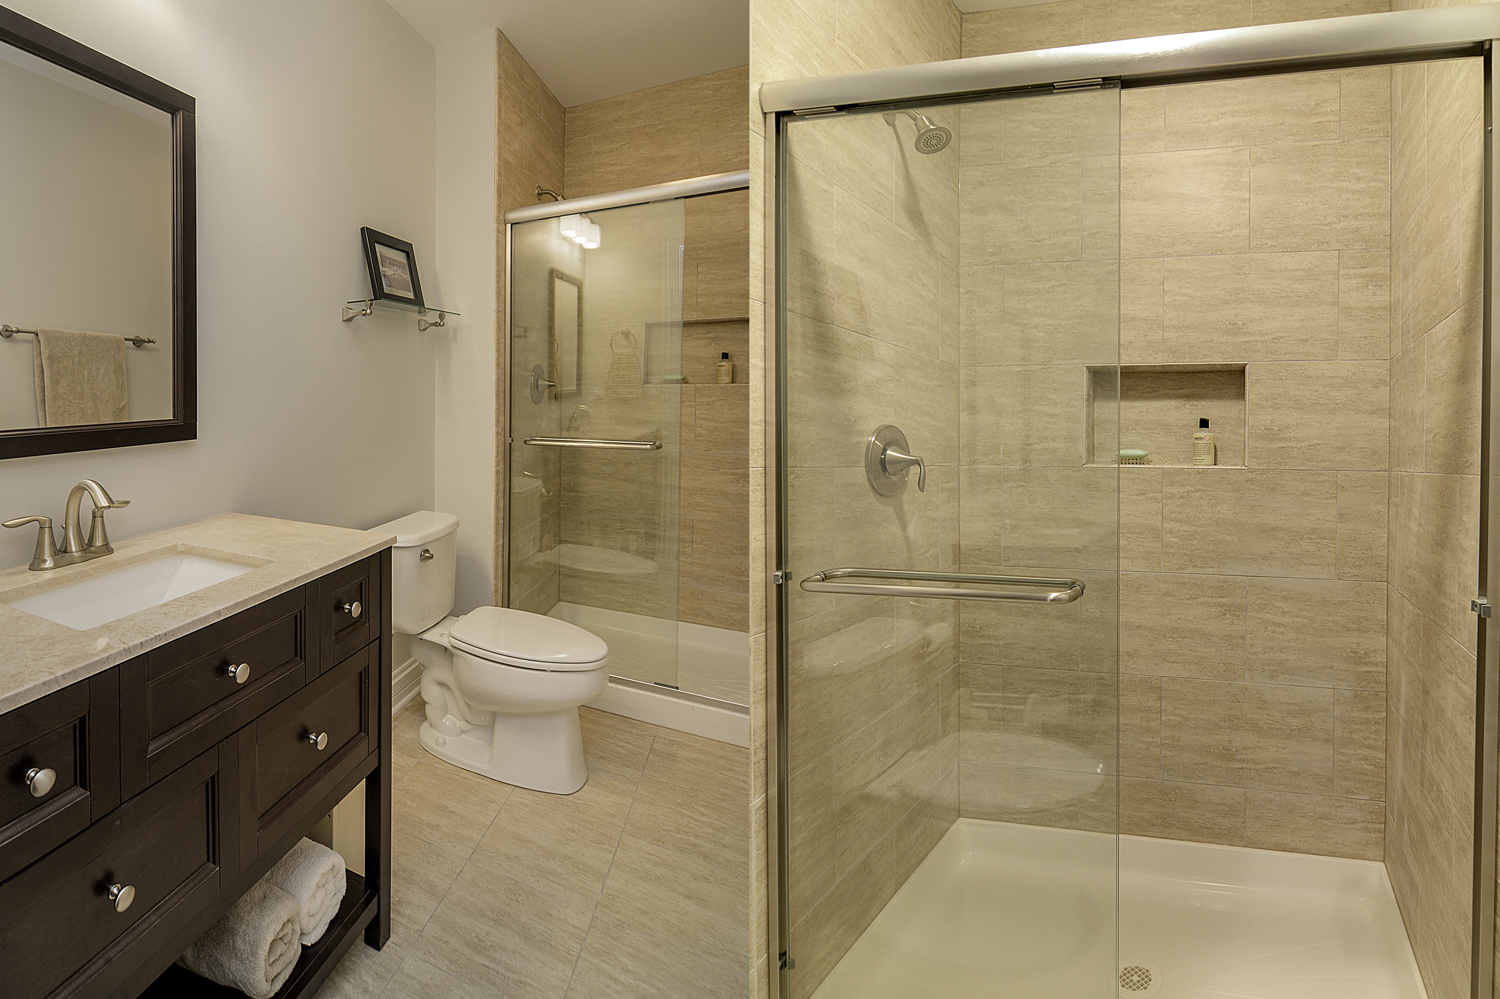 Bathroom Remodelling Contractors Decoration bathroom contractors.bathroom contractors before remodeling